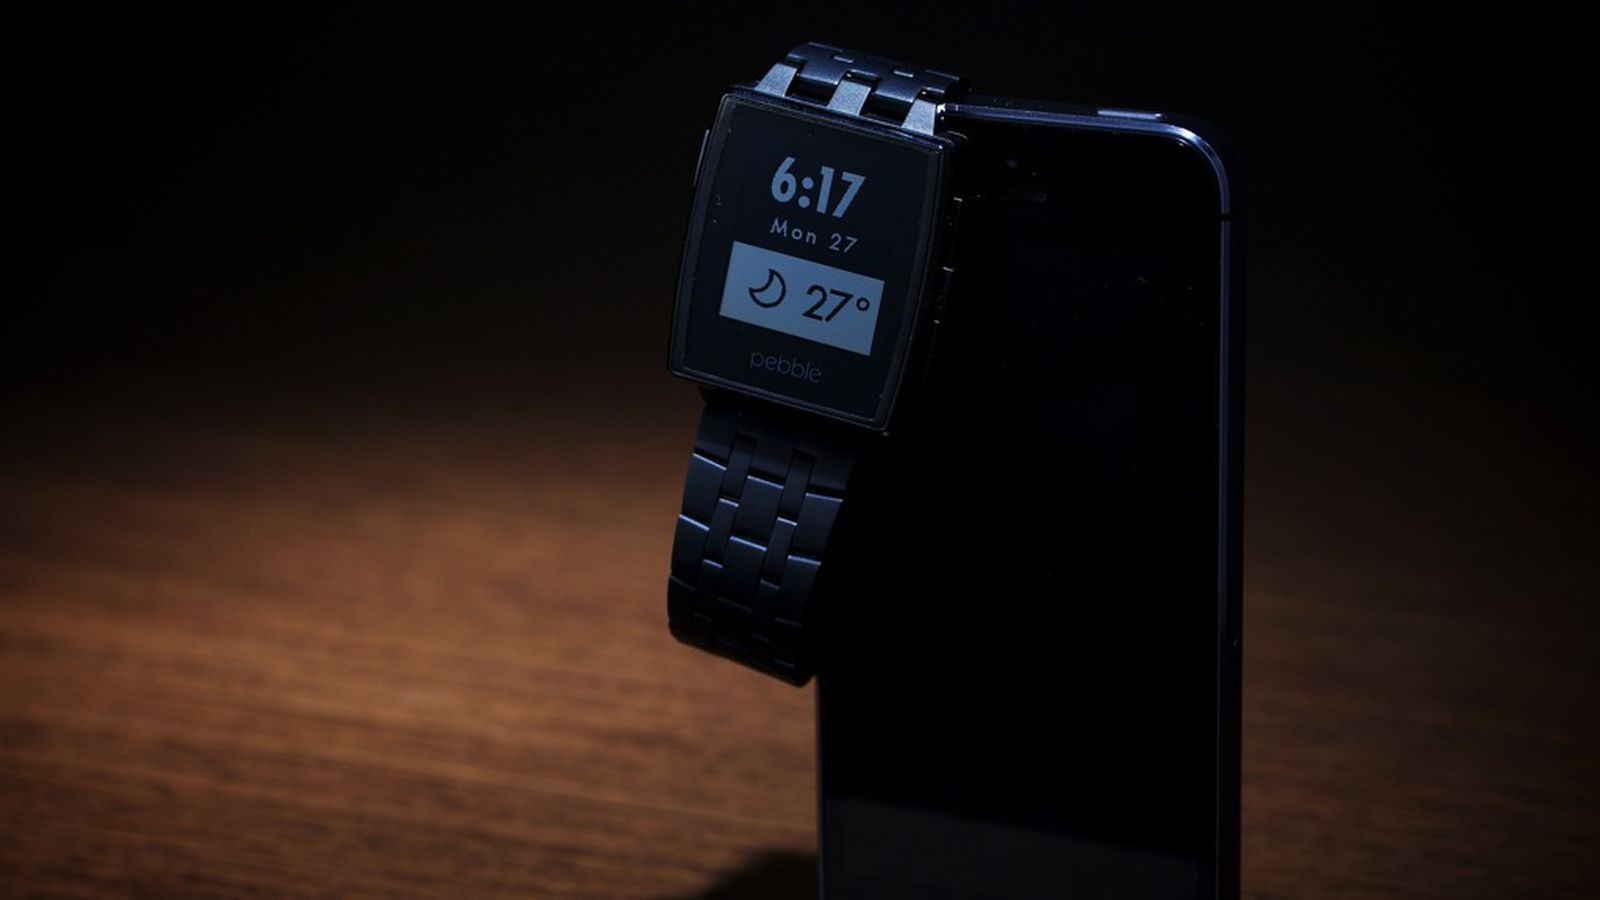 Pebble: So far Sold Smartwatches 1.8 Million